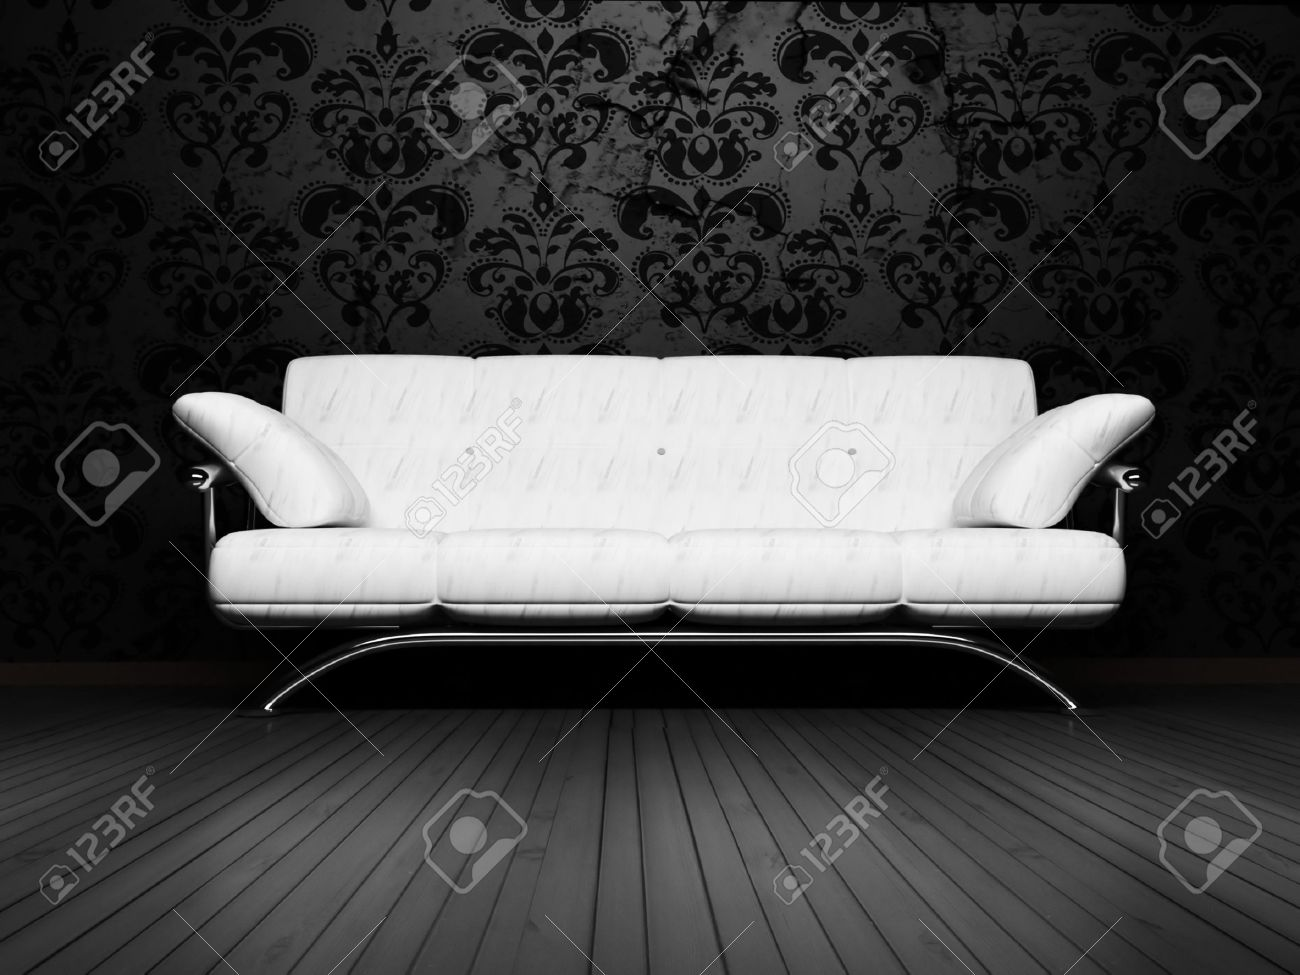 Modern Interior Design Of Living Room With A Royal White Sofa On The Vintage Background Stock